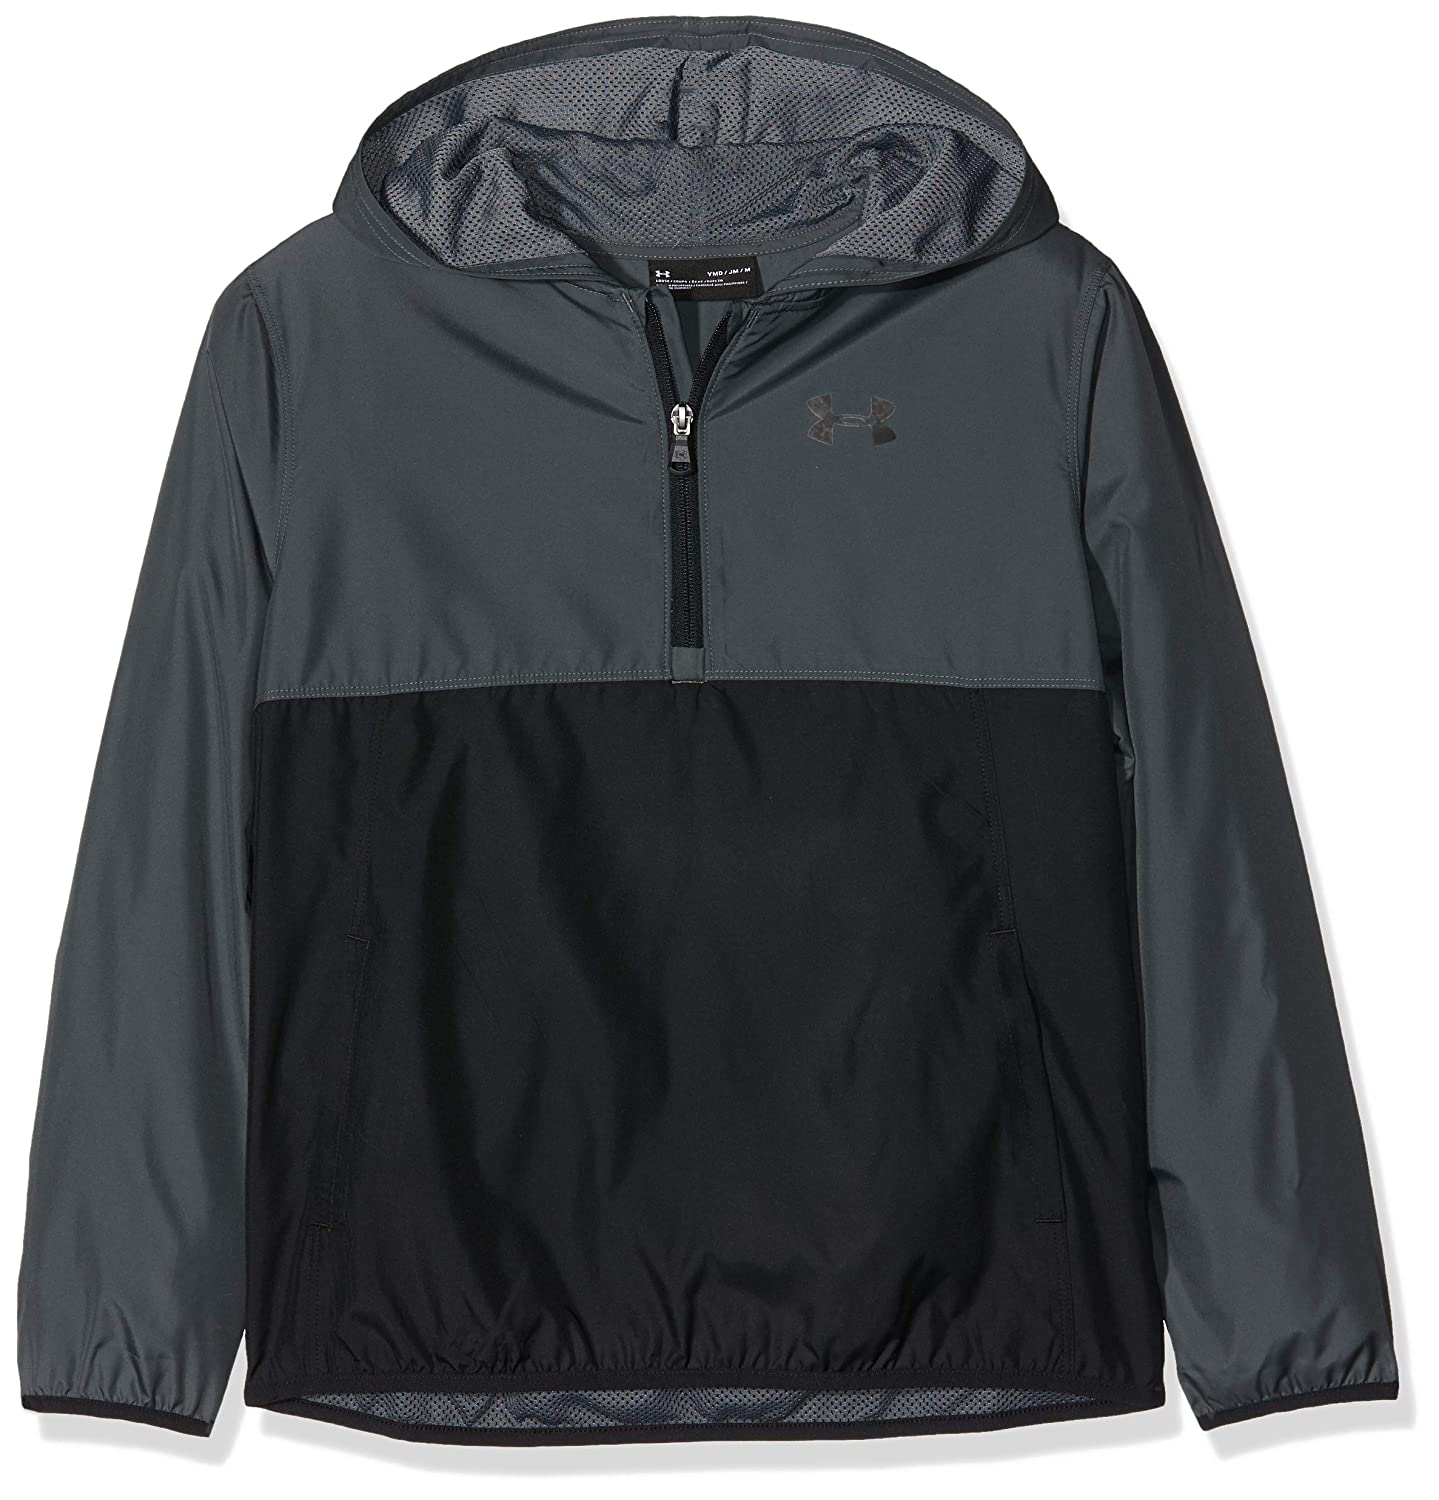 Pitch Gray//Black Under Armour Kids Packable 1//2 Zip Jacket Warm-up Top Youth Small